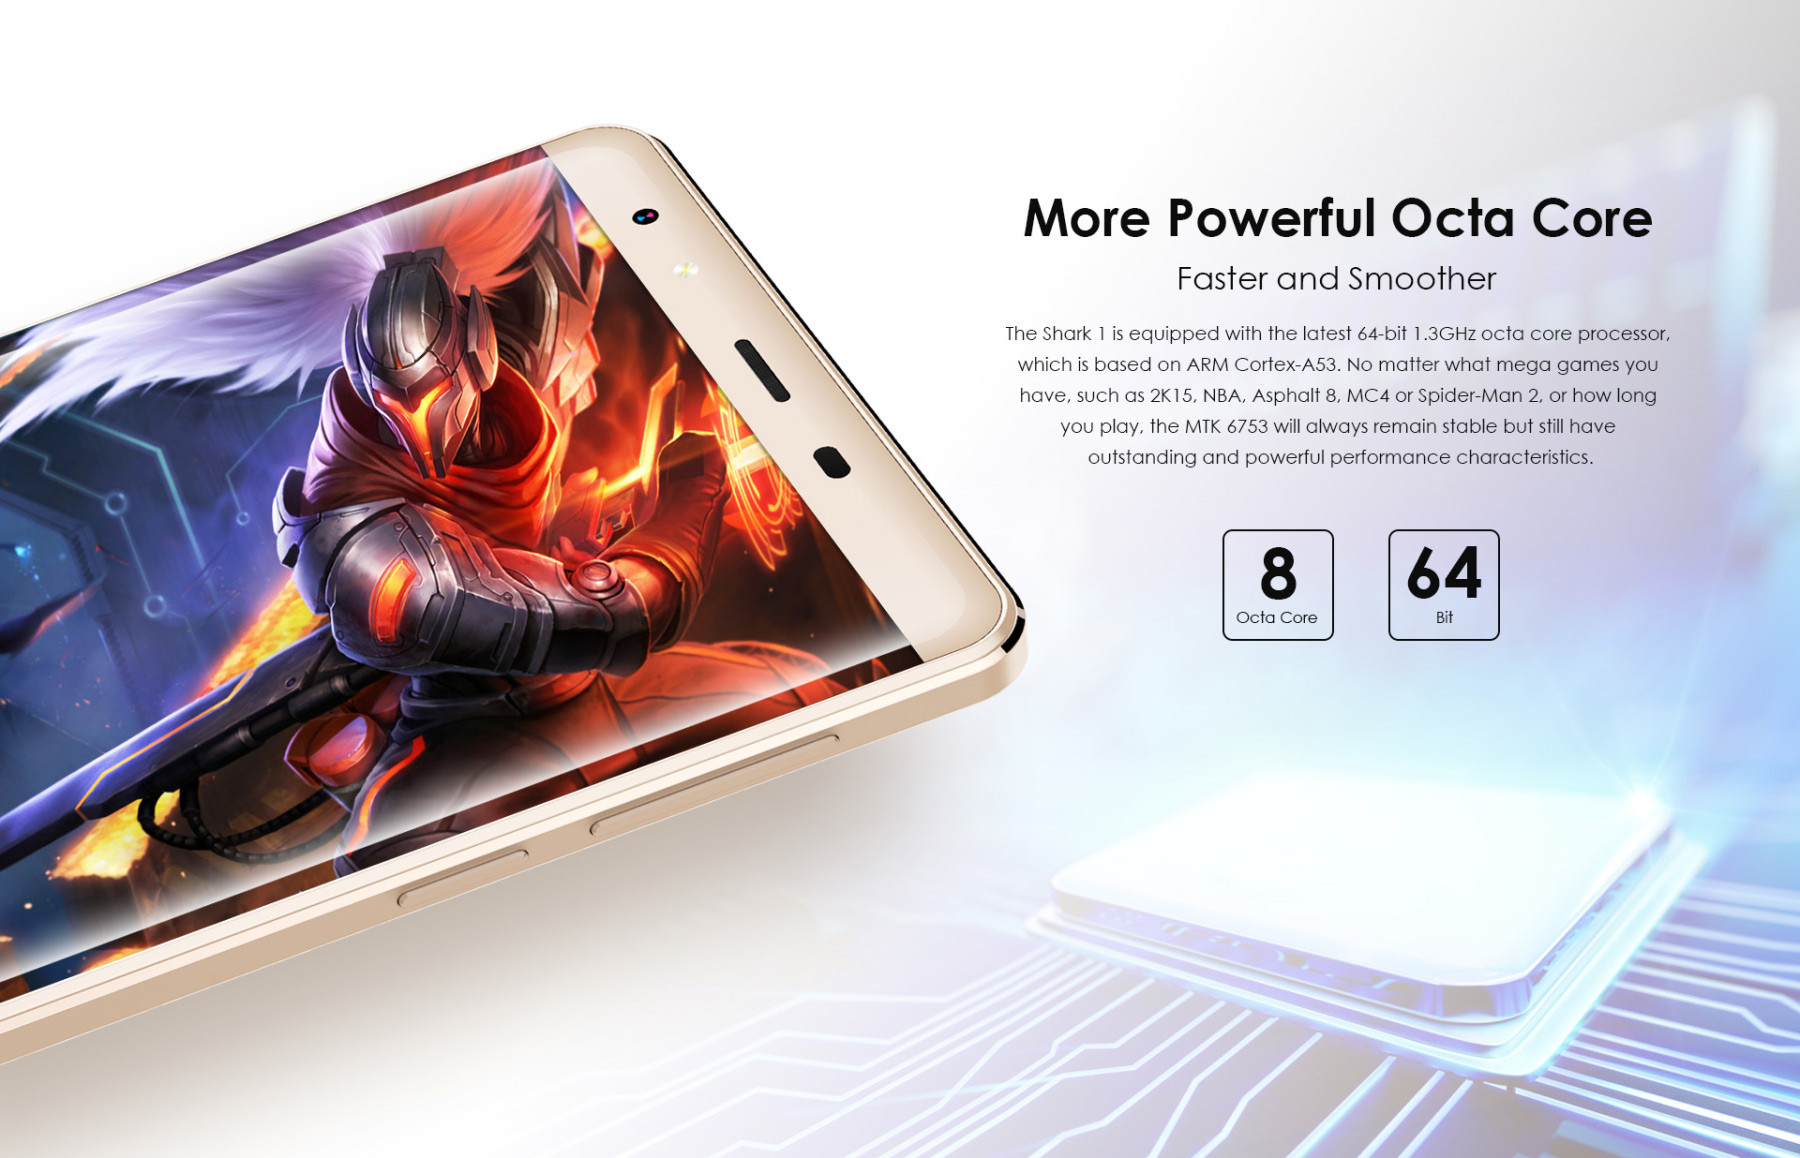 Leagoo Shark 1 6.0 inch 4G Phablet Android 5.1 MTK6753 64bit Octa Core 1.3GHz 3GB RAM 16GB ROM Fingerprint ID 13.0MP + 5.0MP Cameras 2.5D Corning Glass Gorilla Screen